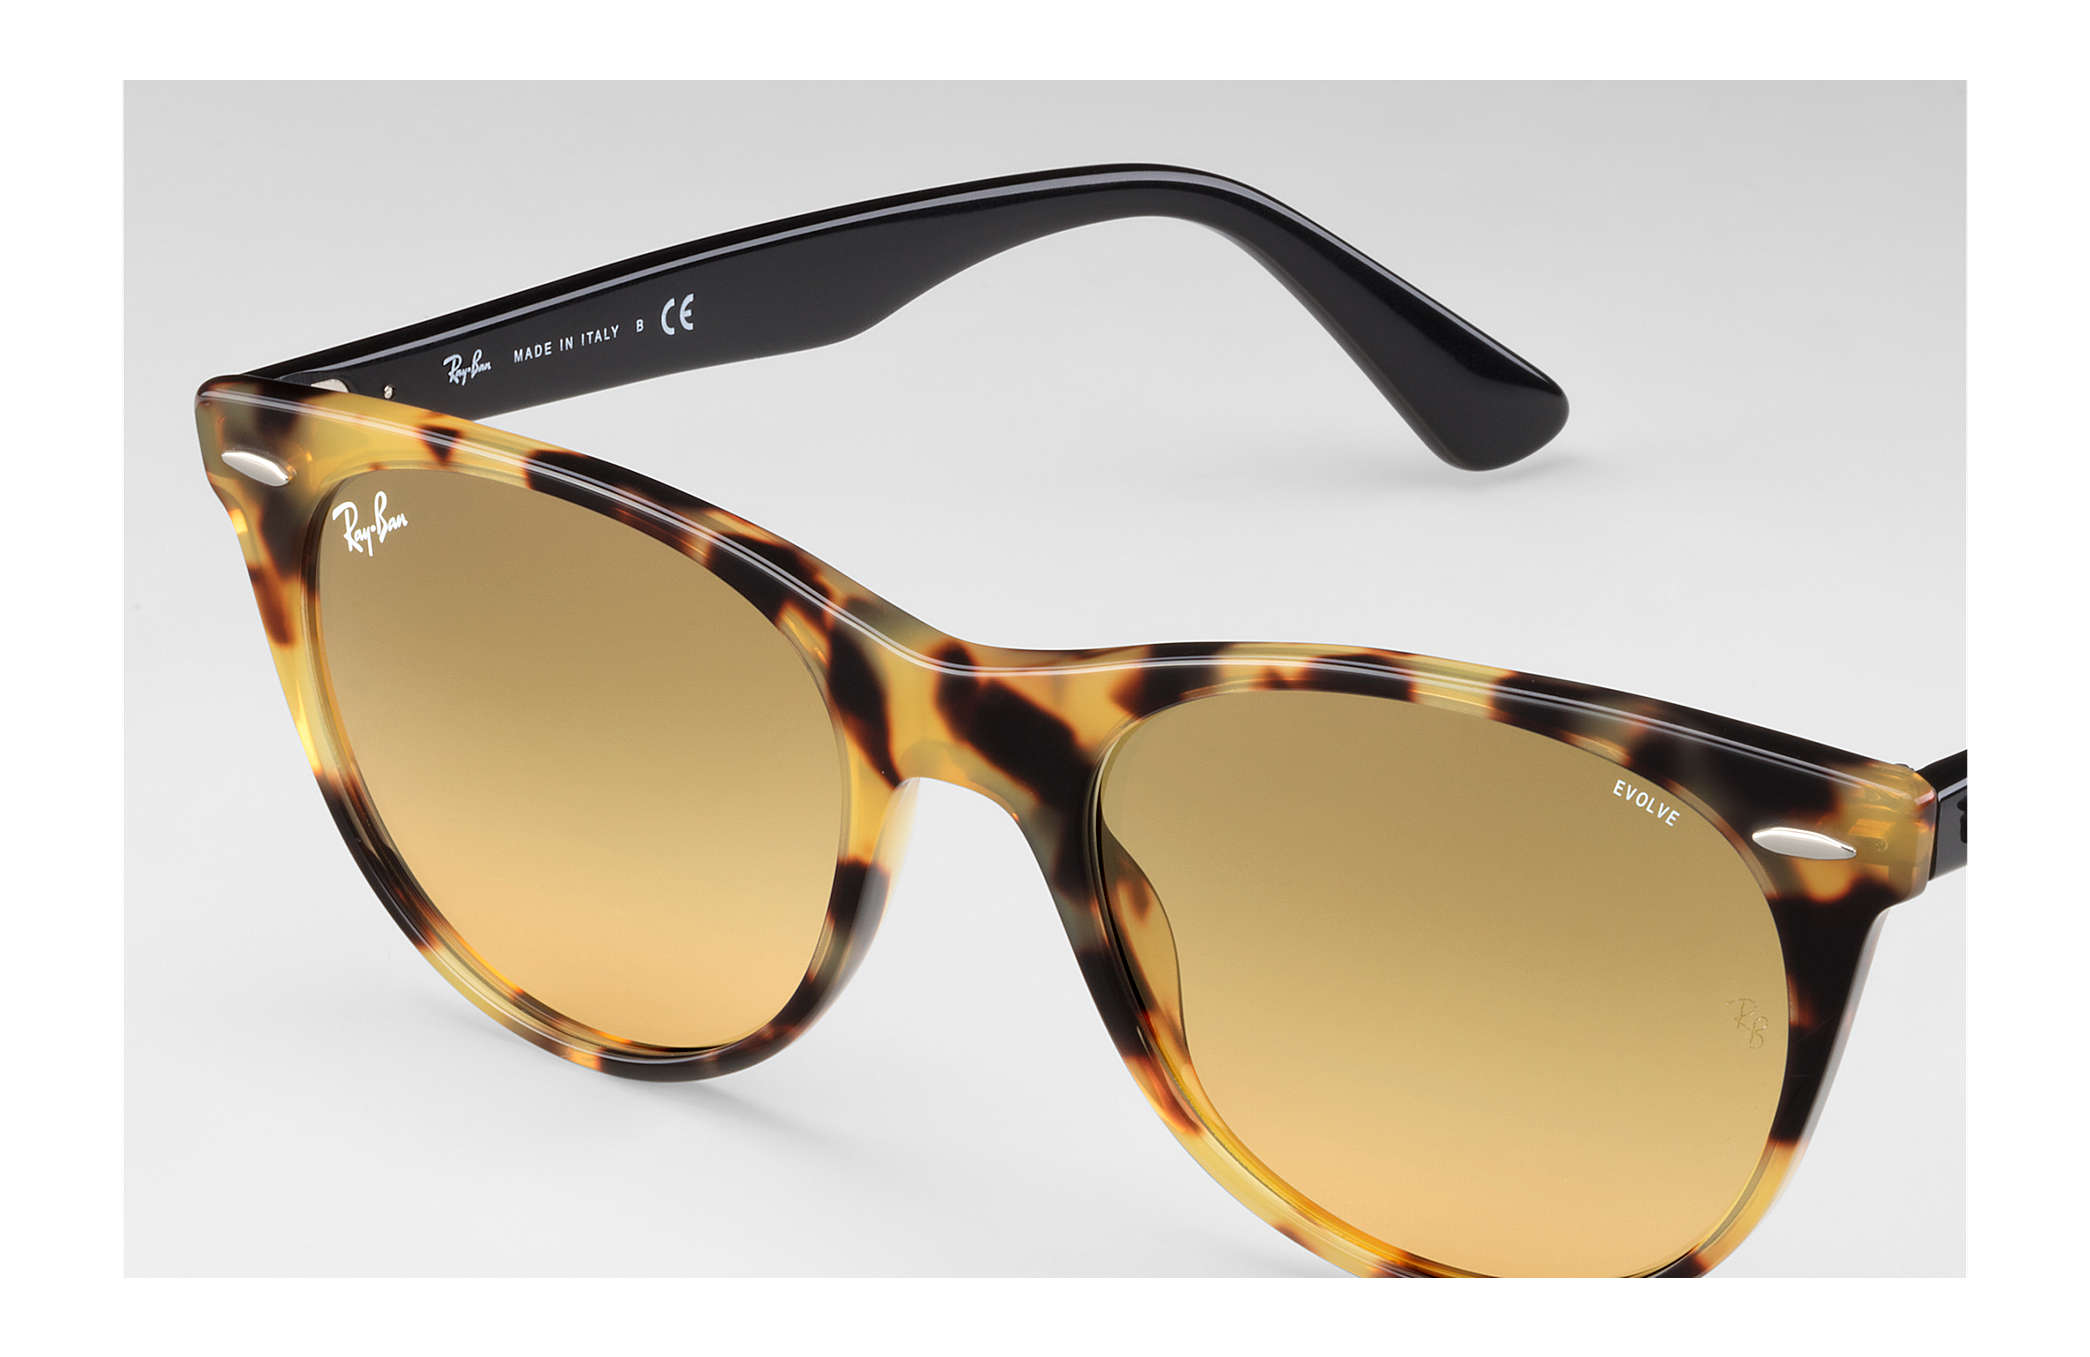 Ii Out Wayfarer The Evolve Check At Ray gYbf7y6v